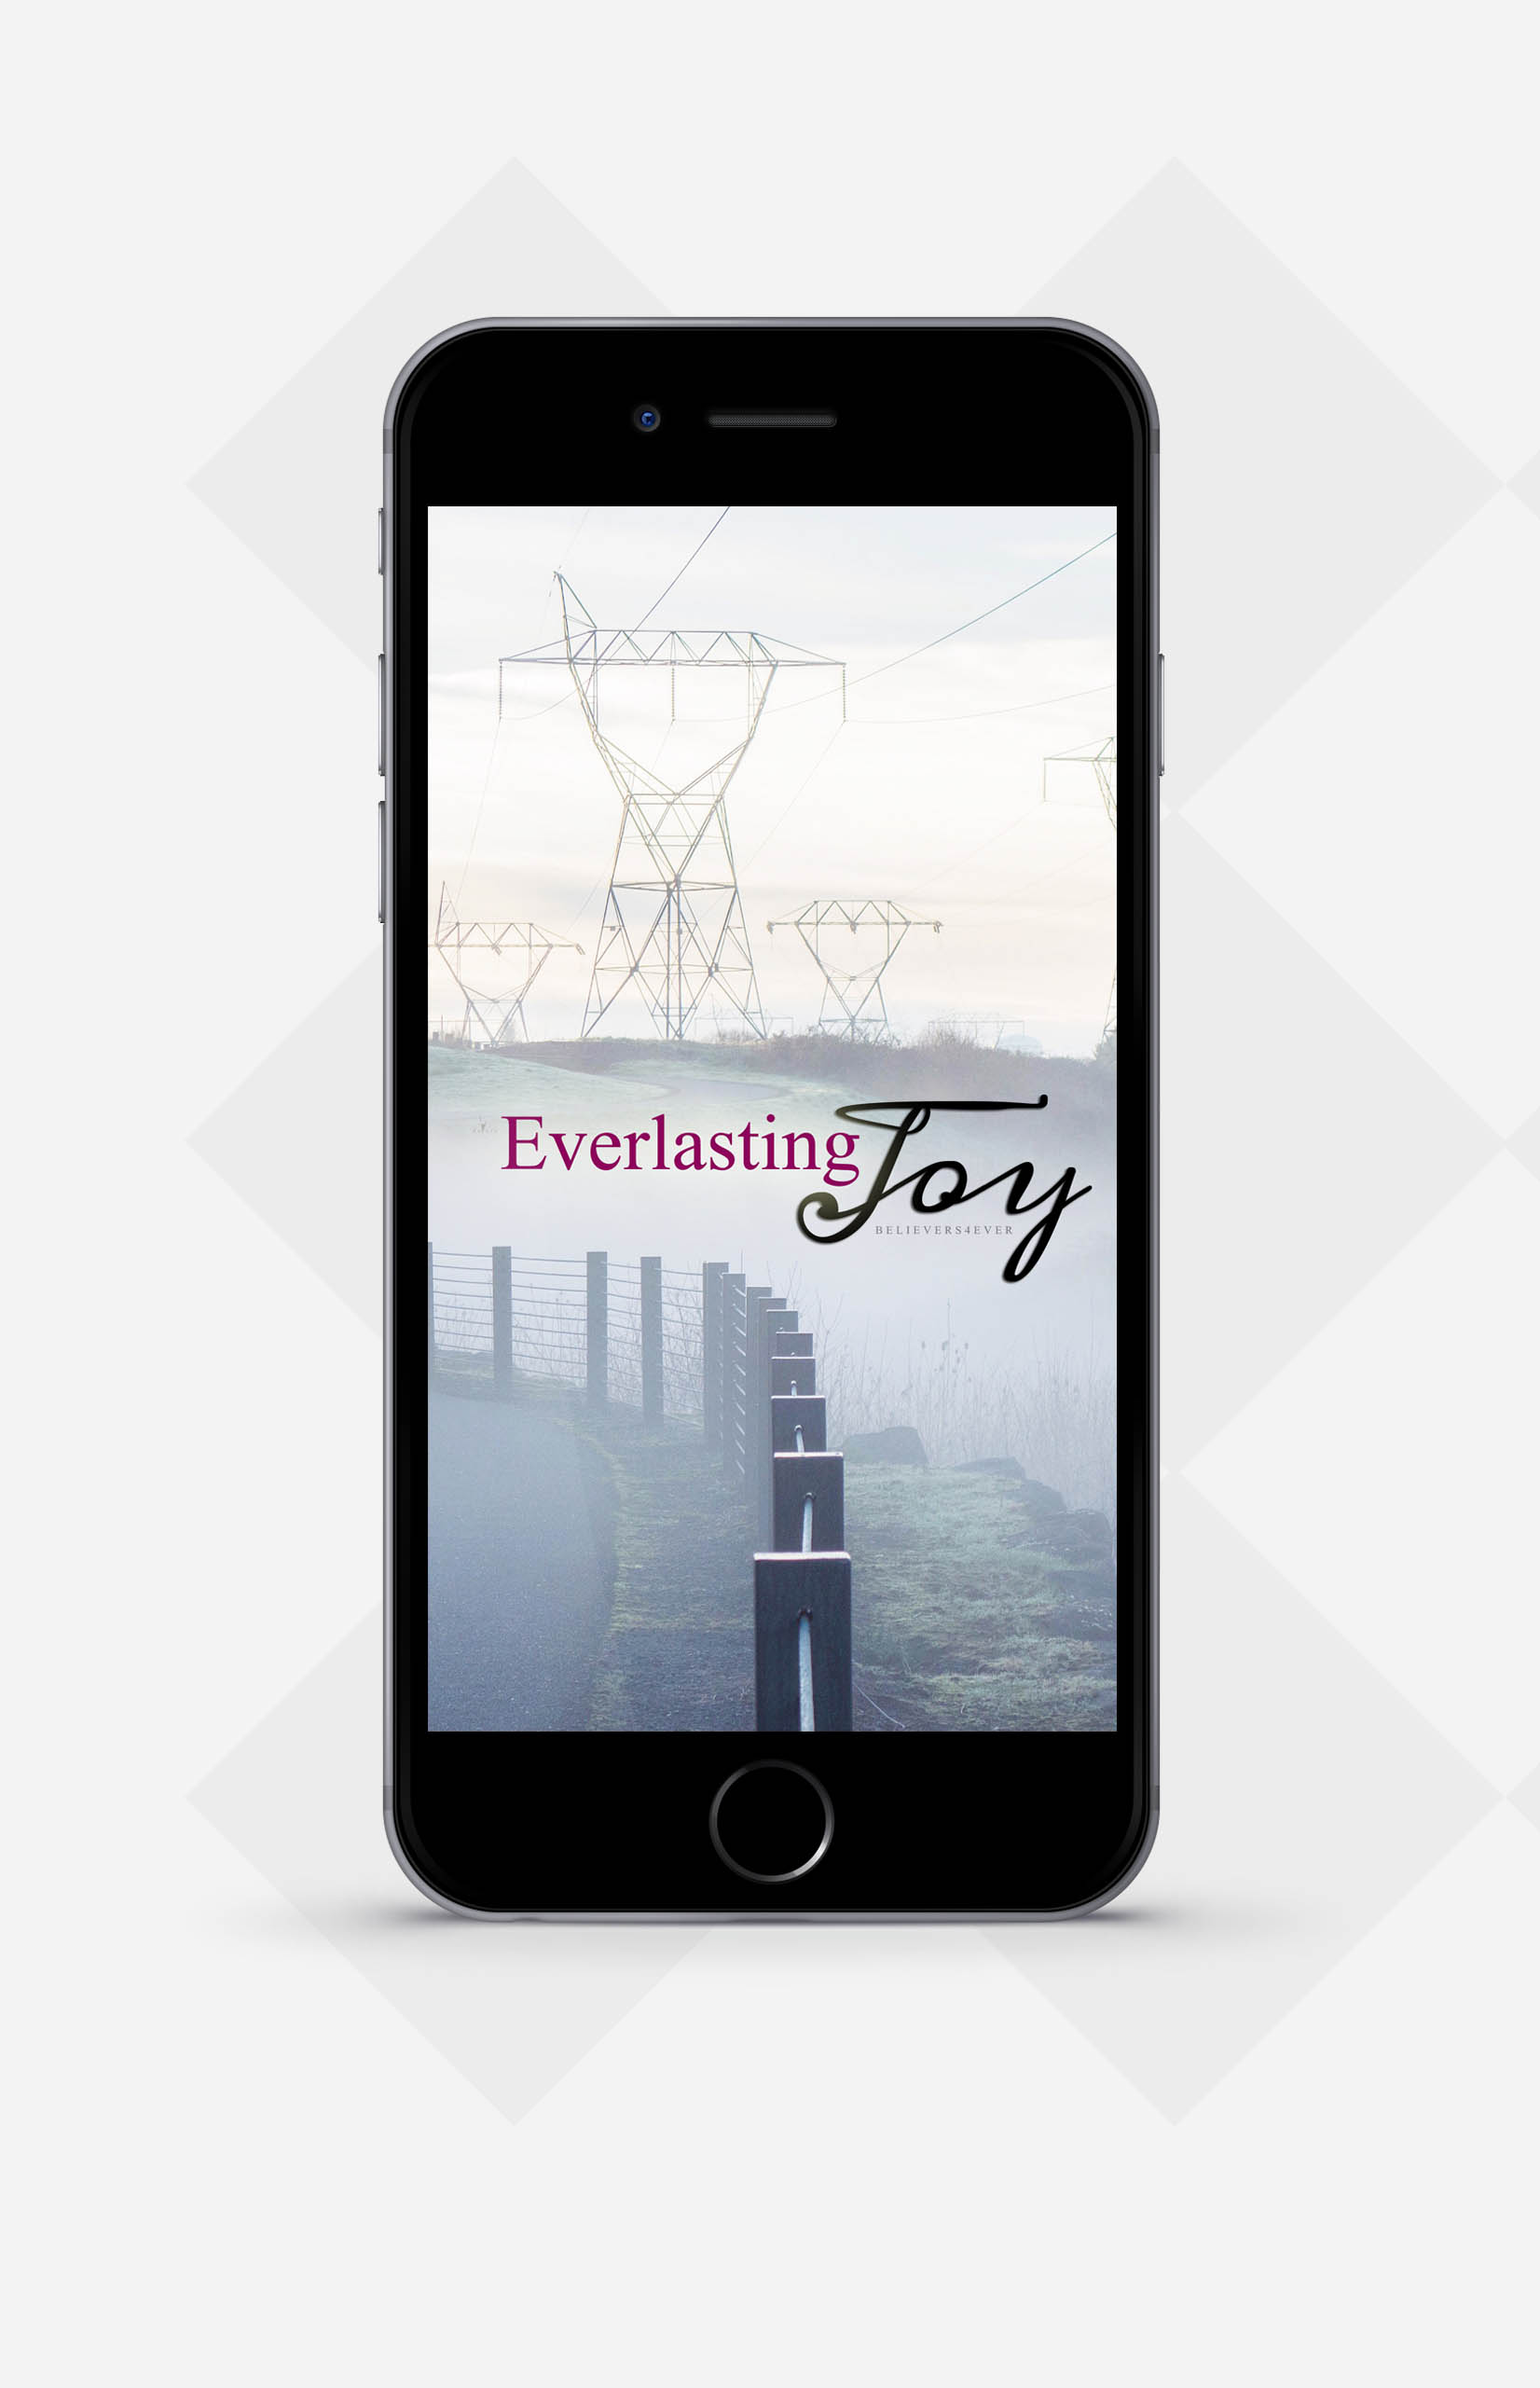 Everlasting joy mobile wallpaper